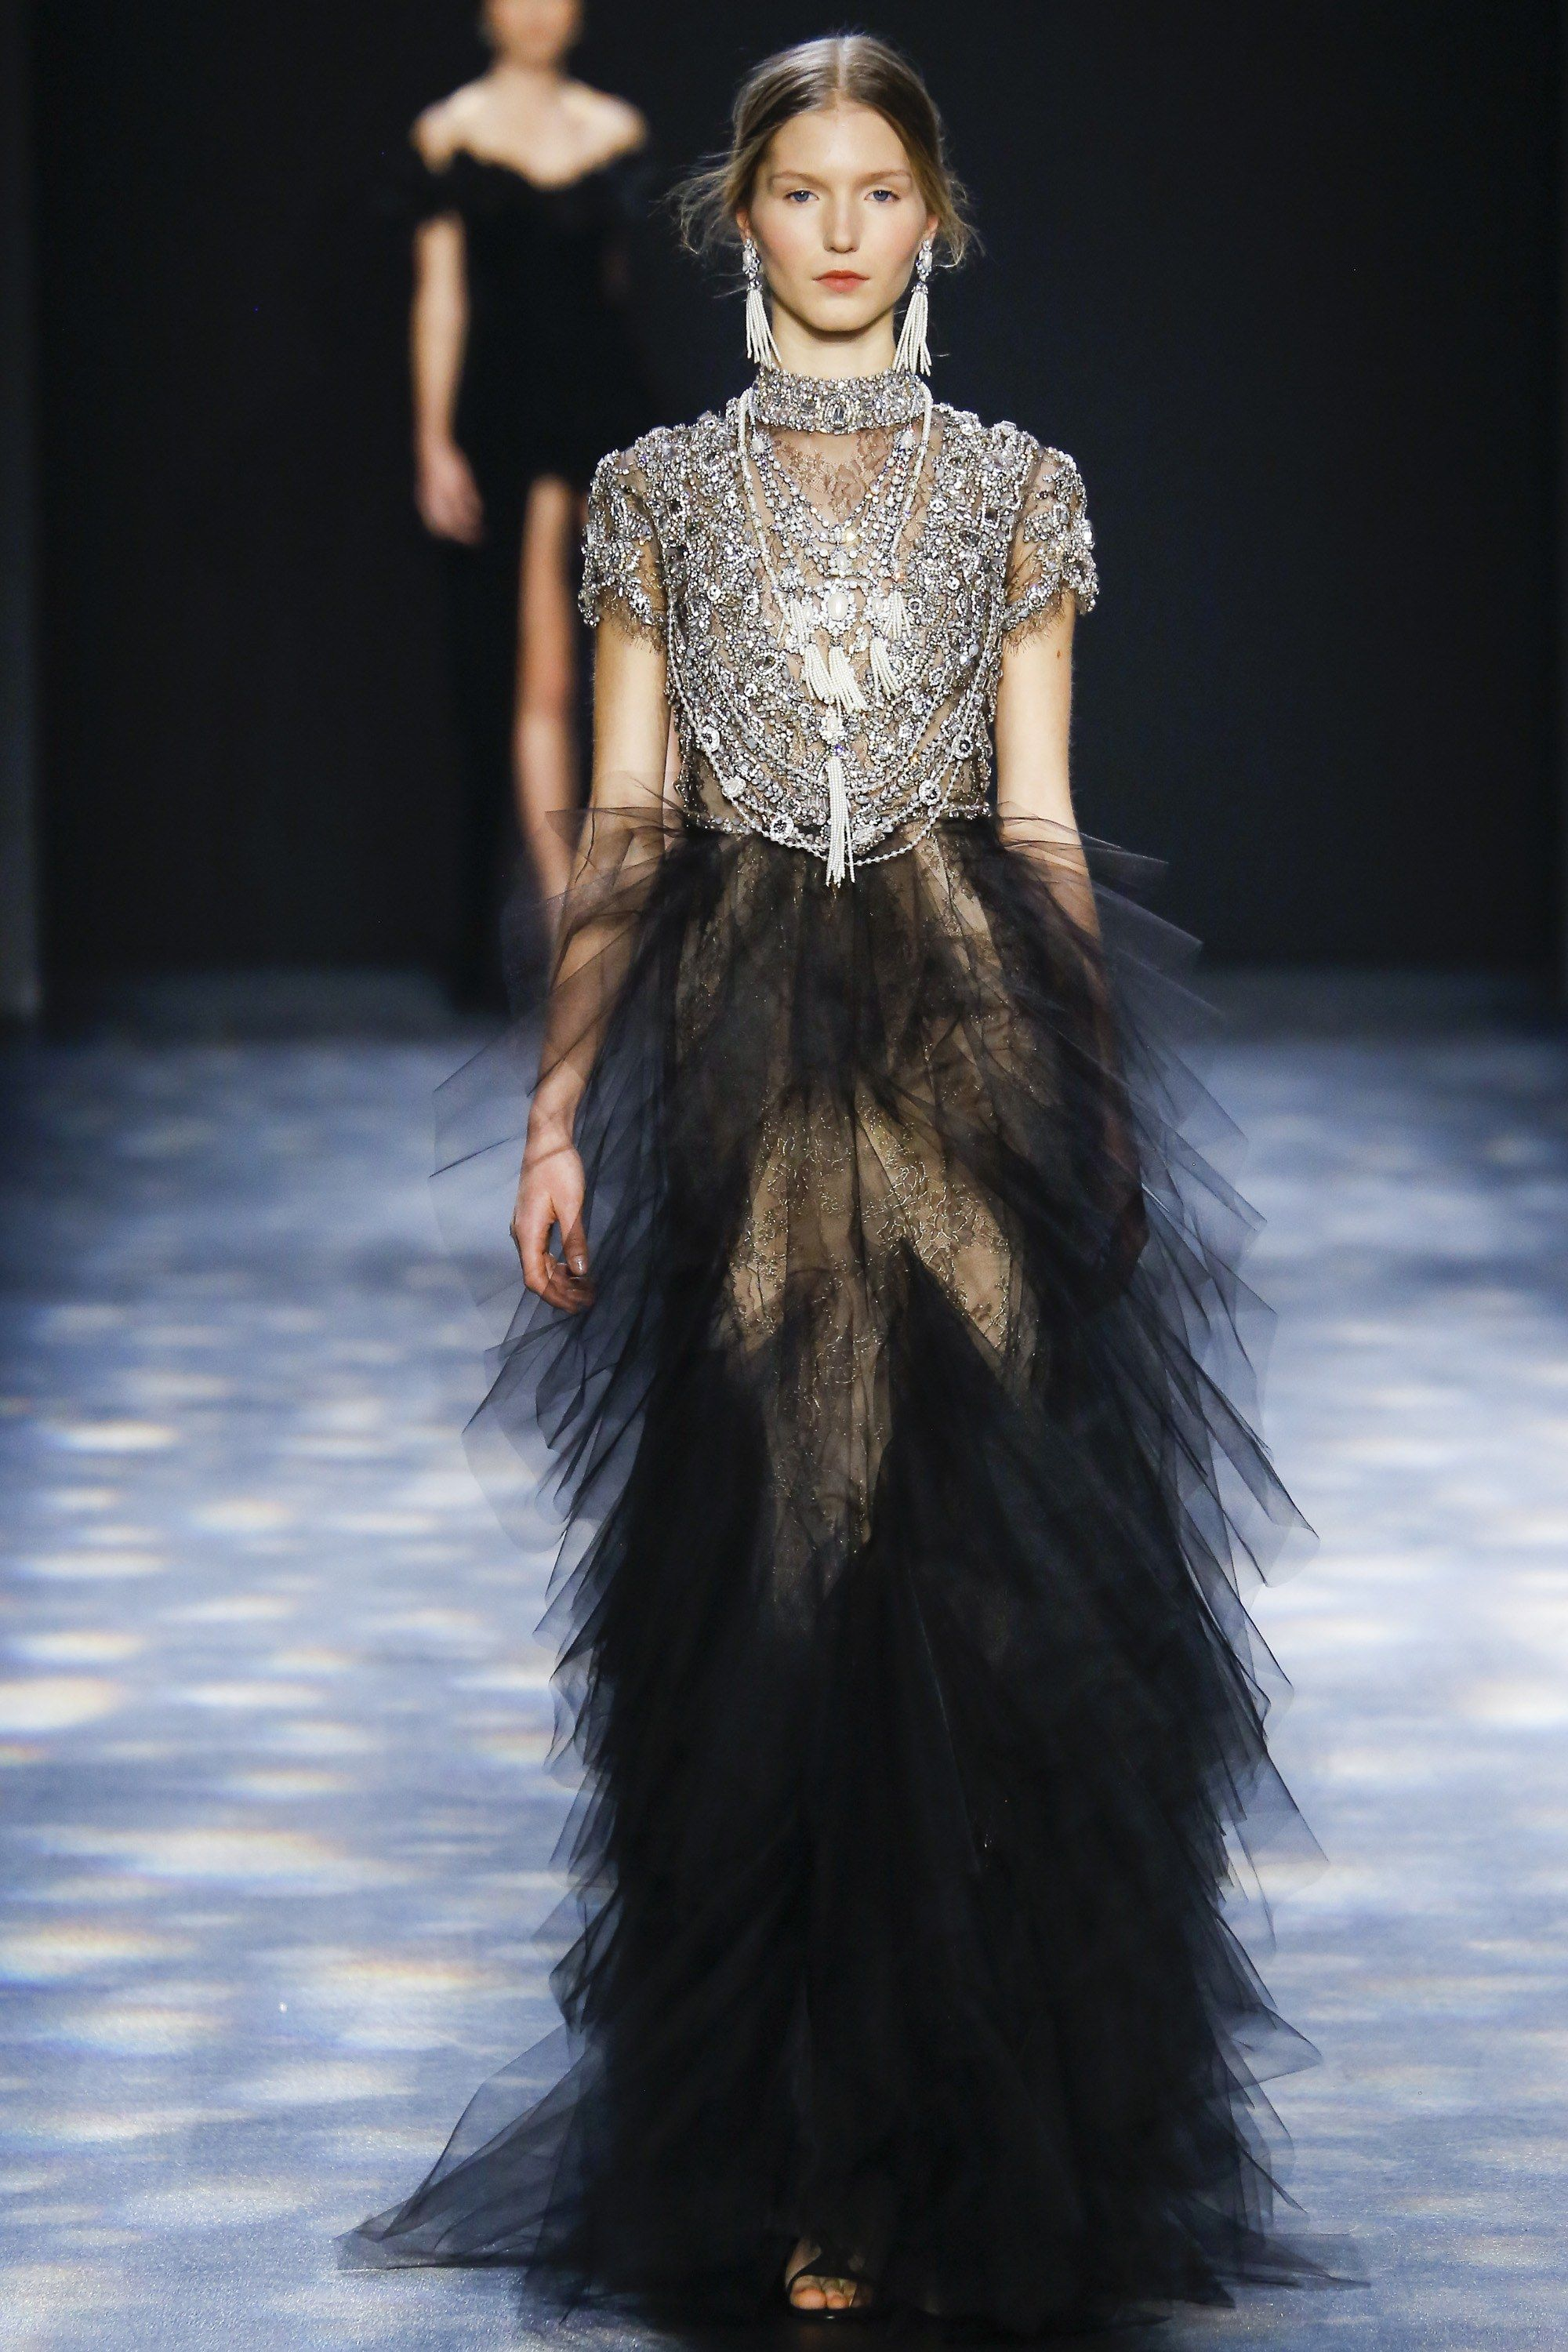 http://www.vogue.com/fashion-shows/fall-2016-ready-to-wear/marchesa/slideshow/collection